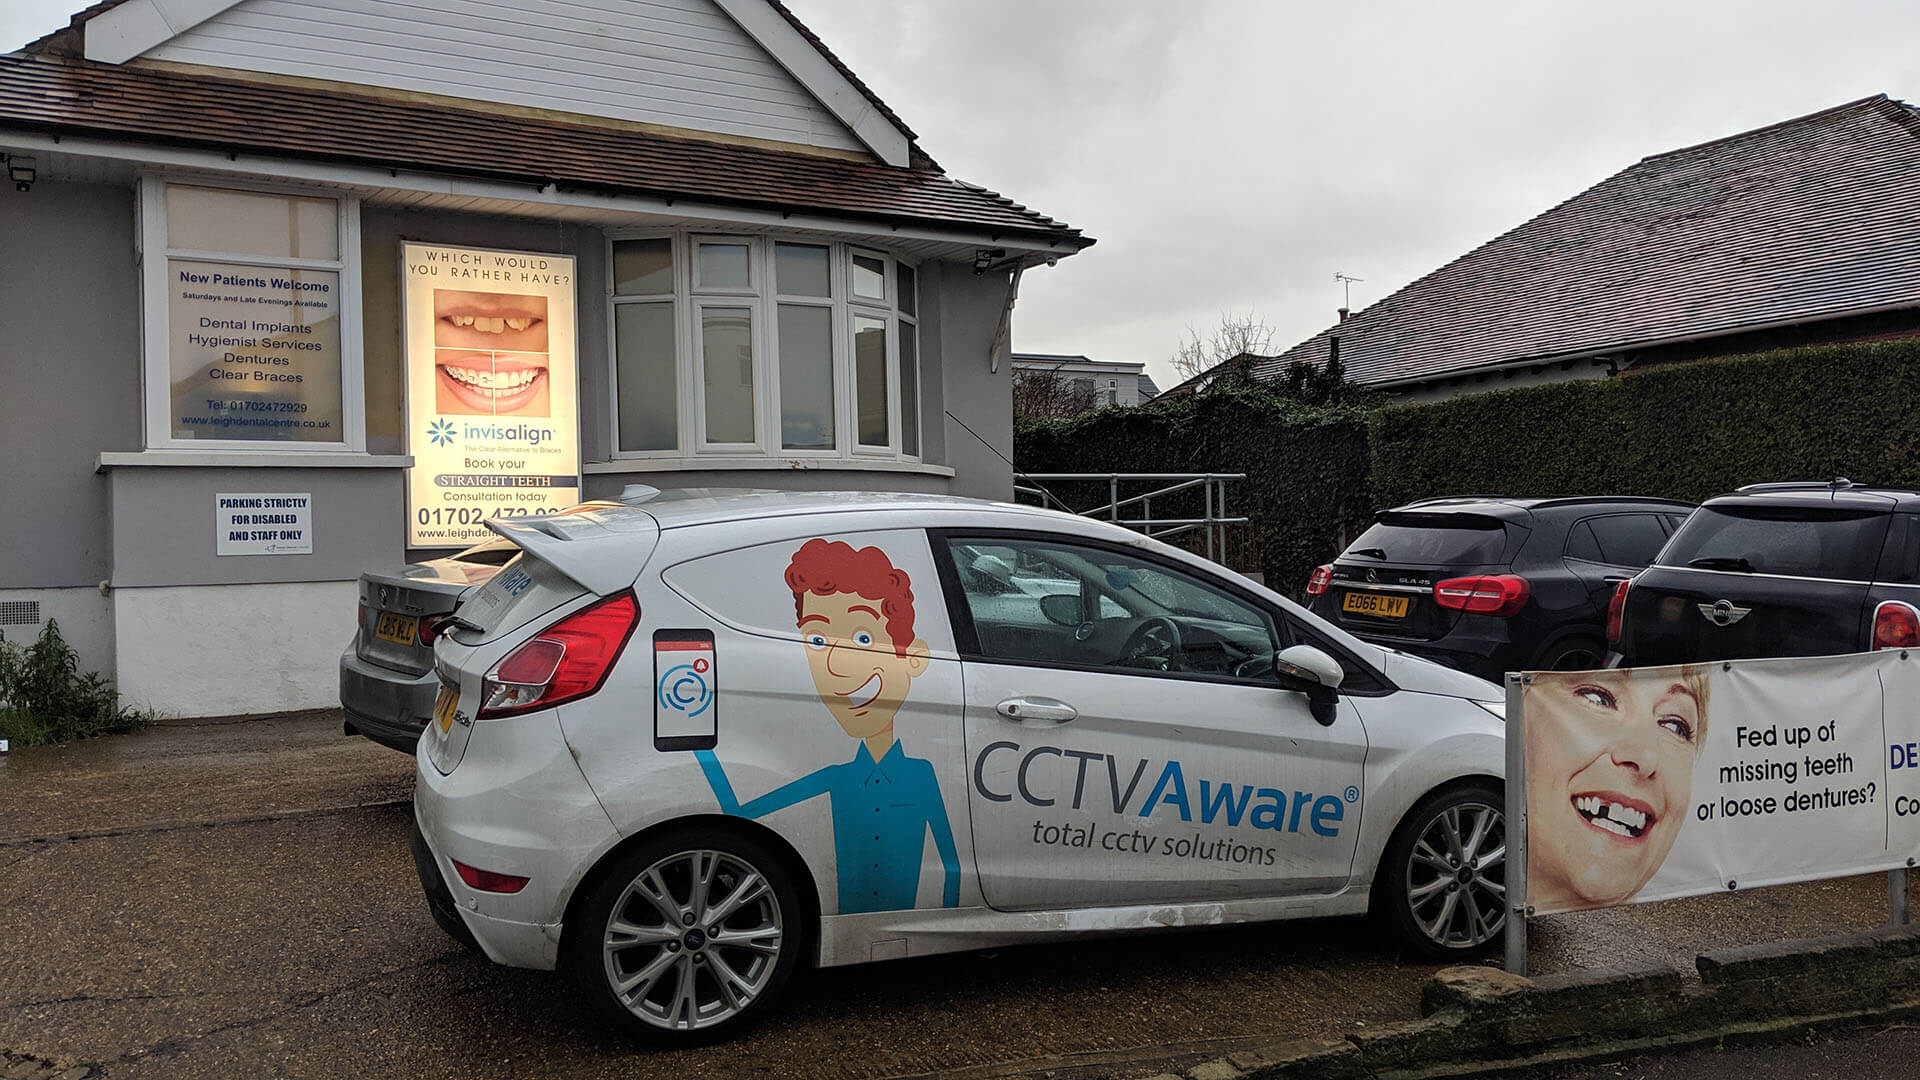 Commercial CCTV Installation in Leigh-on-Sea